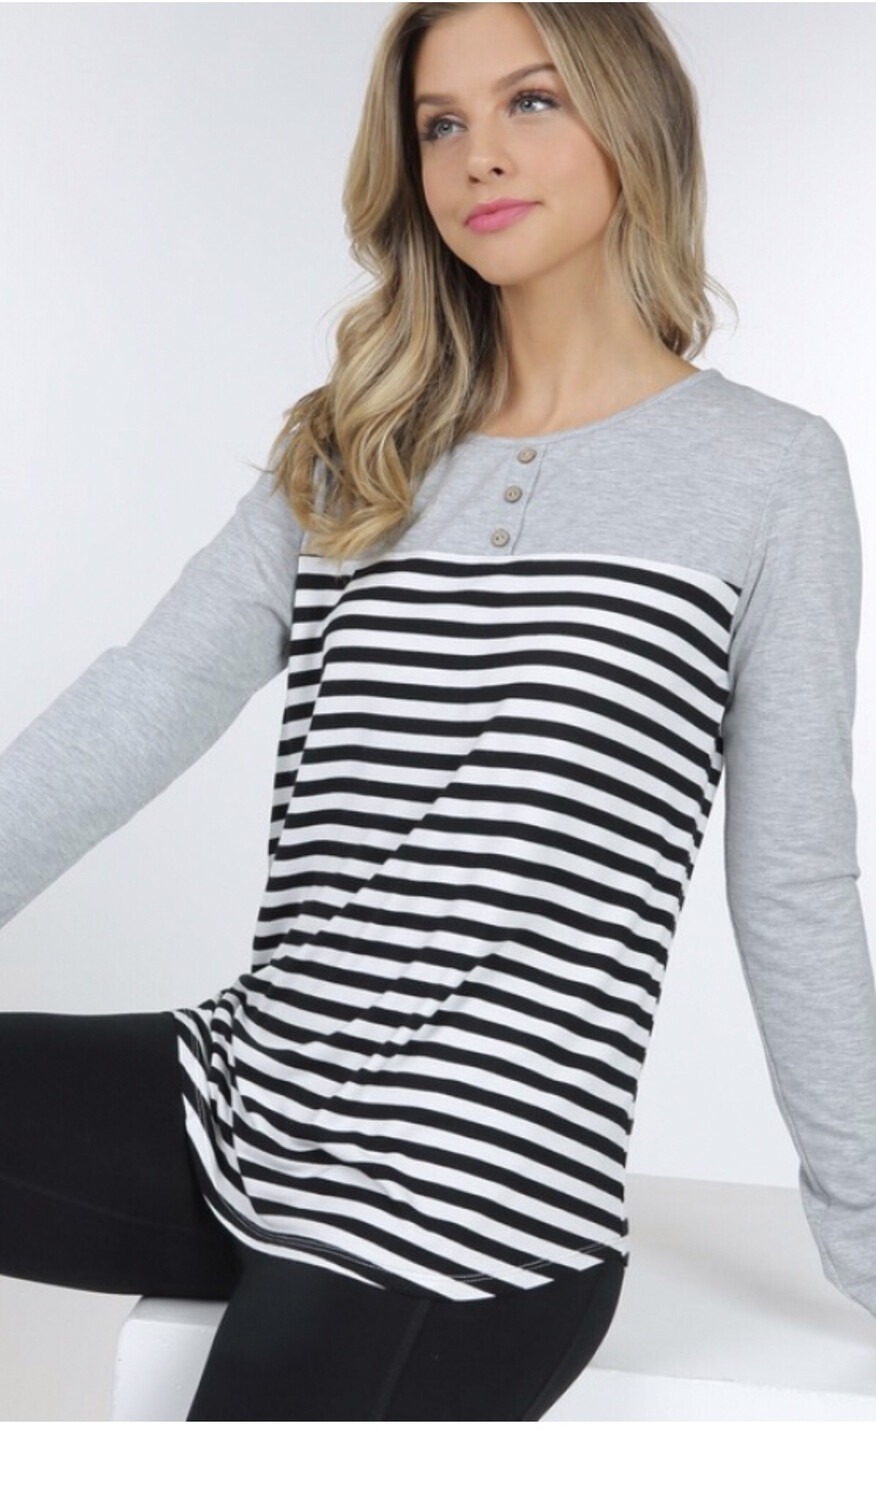 Heather Grey Striped Top